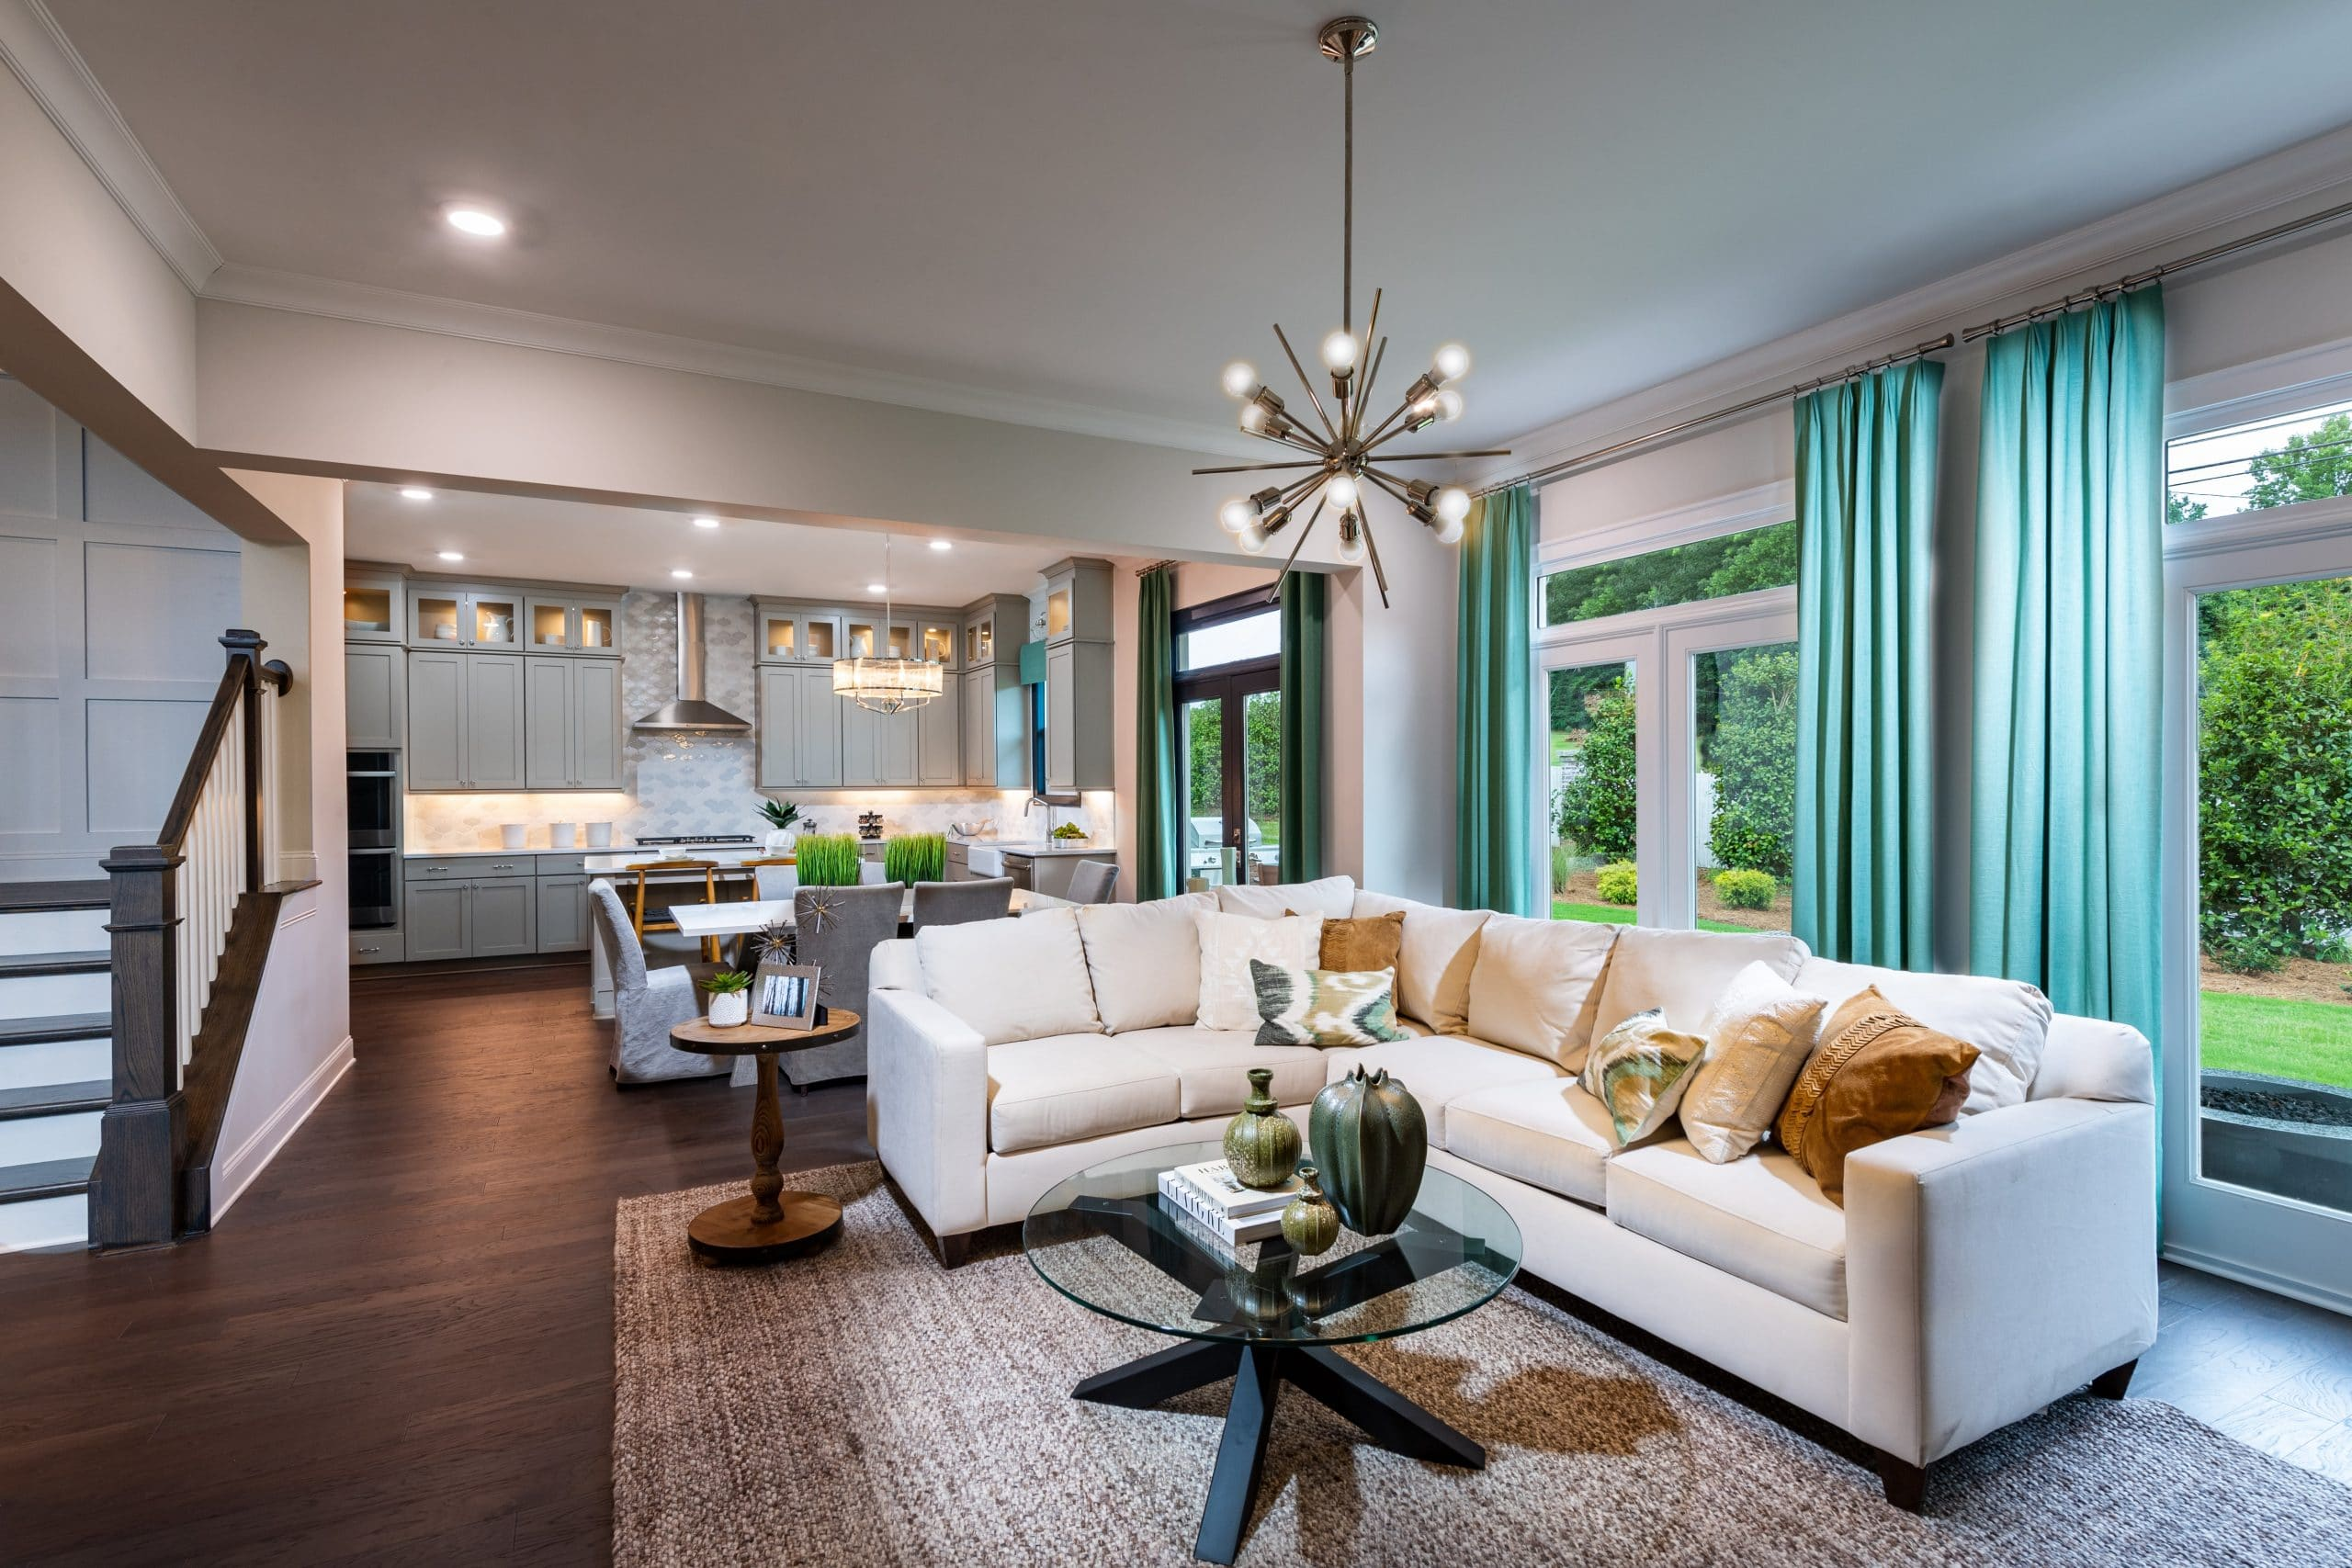 Spring Savings Spree Up to $50K on New Hickory Flat Homes